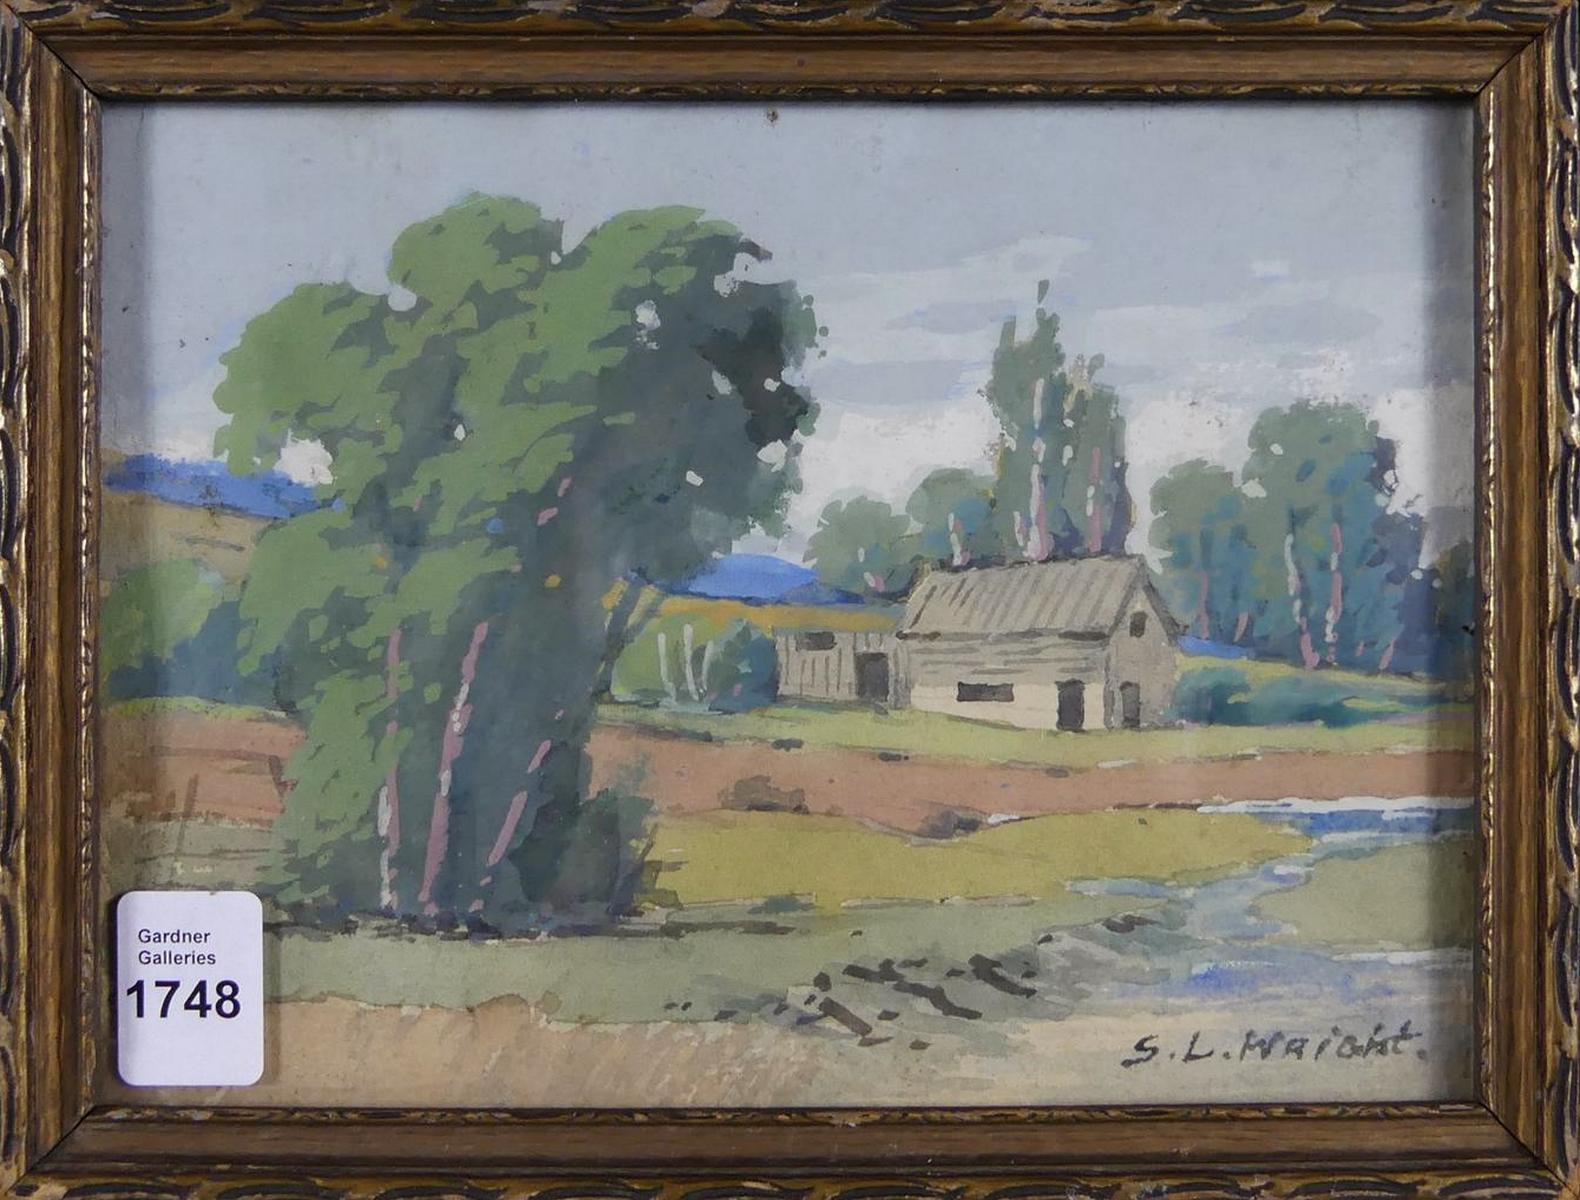 GOLD FRATERNAL RING